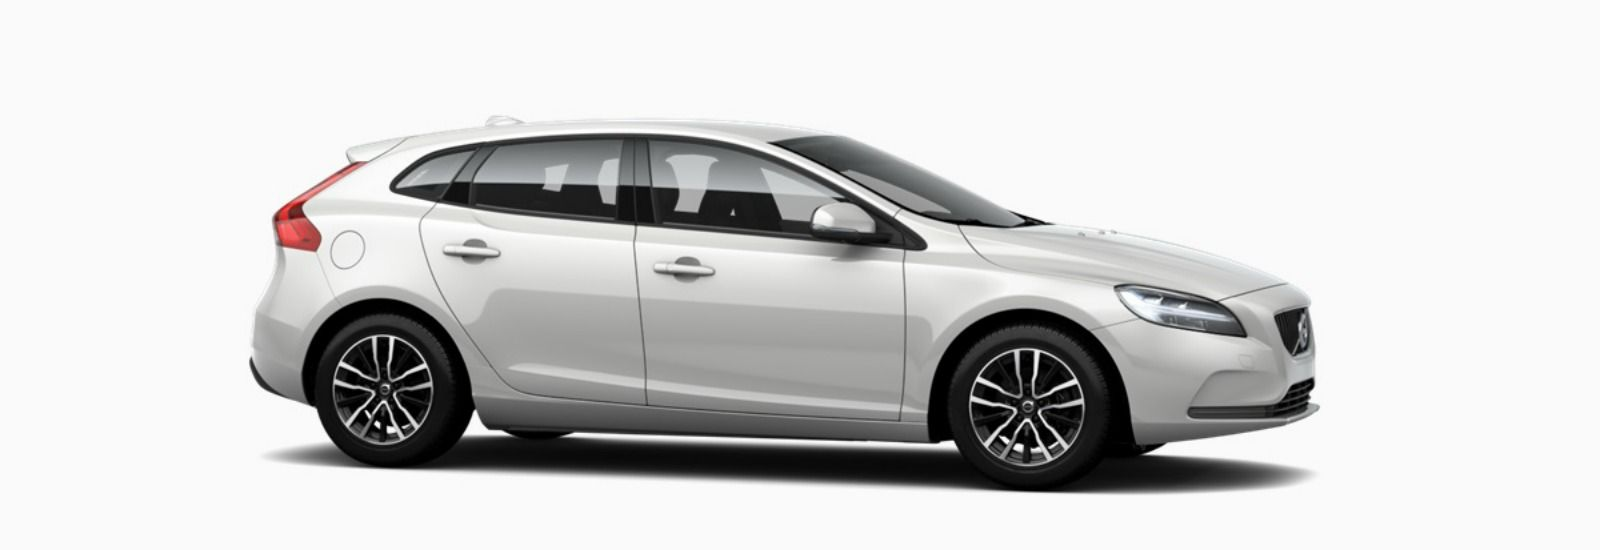 Car colour white - Electric Silver Is A Conservative And Simple Shade Which Should Be Popular With Used Car Buyers Although It Won T Hide Dirt As Well As Darker Colours